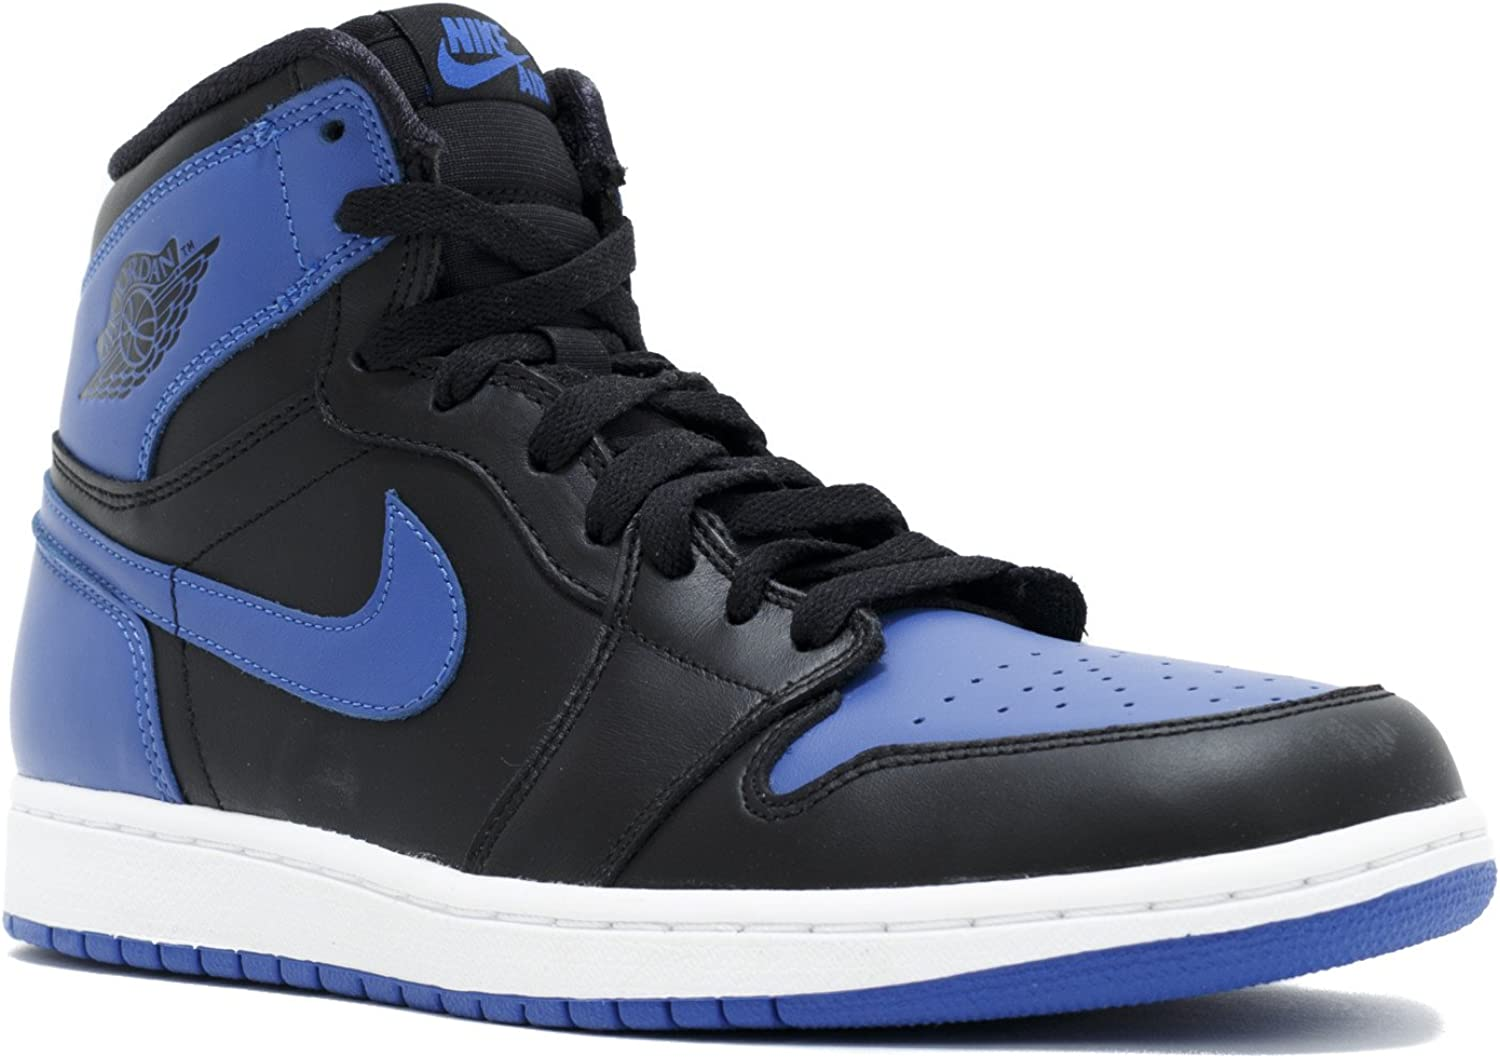 Categoría detective Nabo  Amazon.com: Nike Air Jordan 1 Retro High OG 2013 Negro Azul Real 555088 –  085, 10.5 D(M) US: Shoes